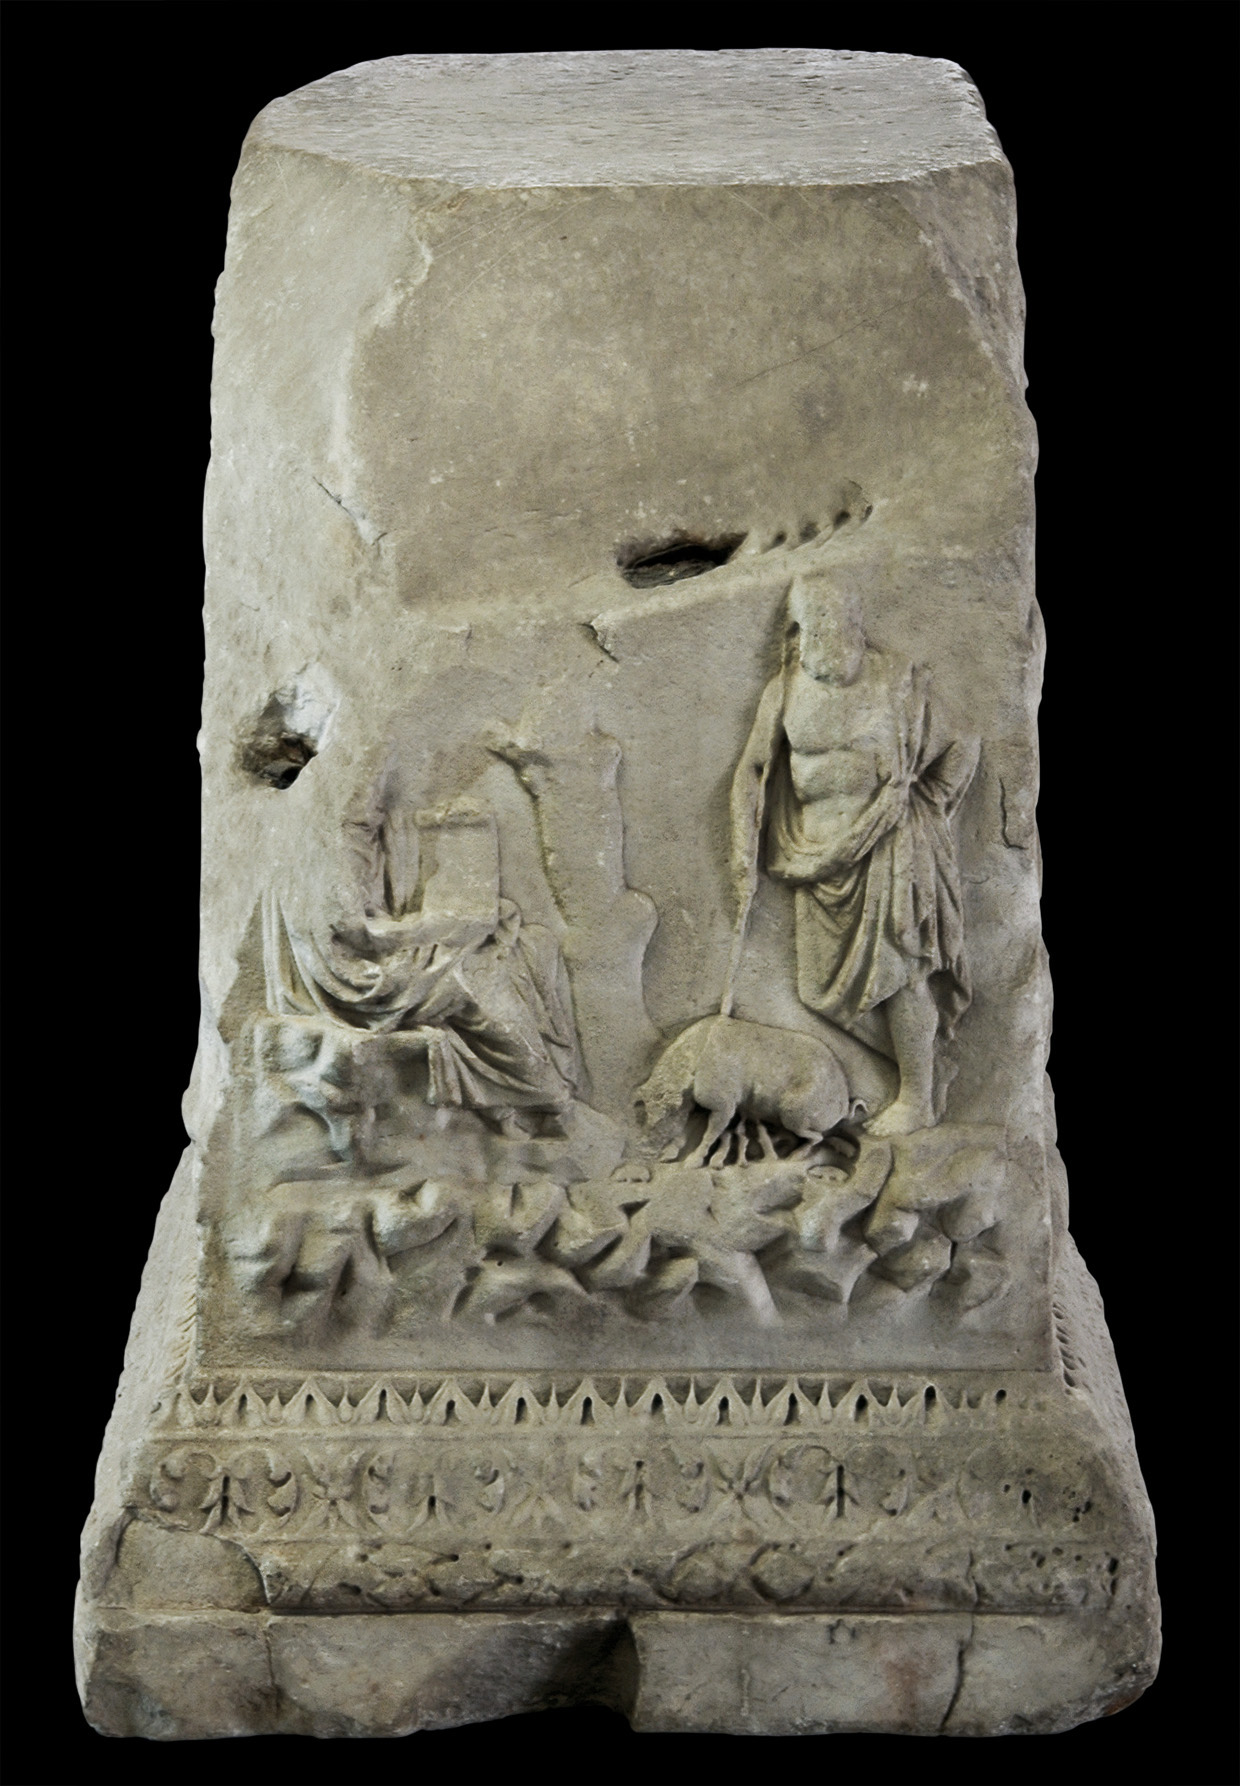 Altar of the Lares Augusti. Prodigium of the Laurentian Sow. Marble. 12—2 BCE. Inv. No. 1115. Rome, Vatican Museums, Gregorian Profane Museum